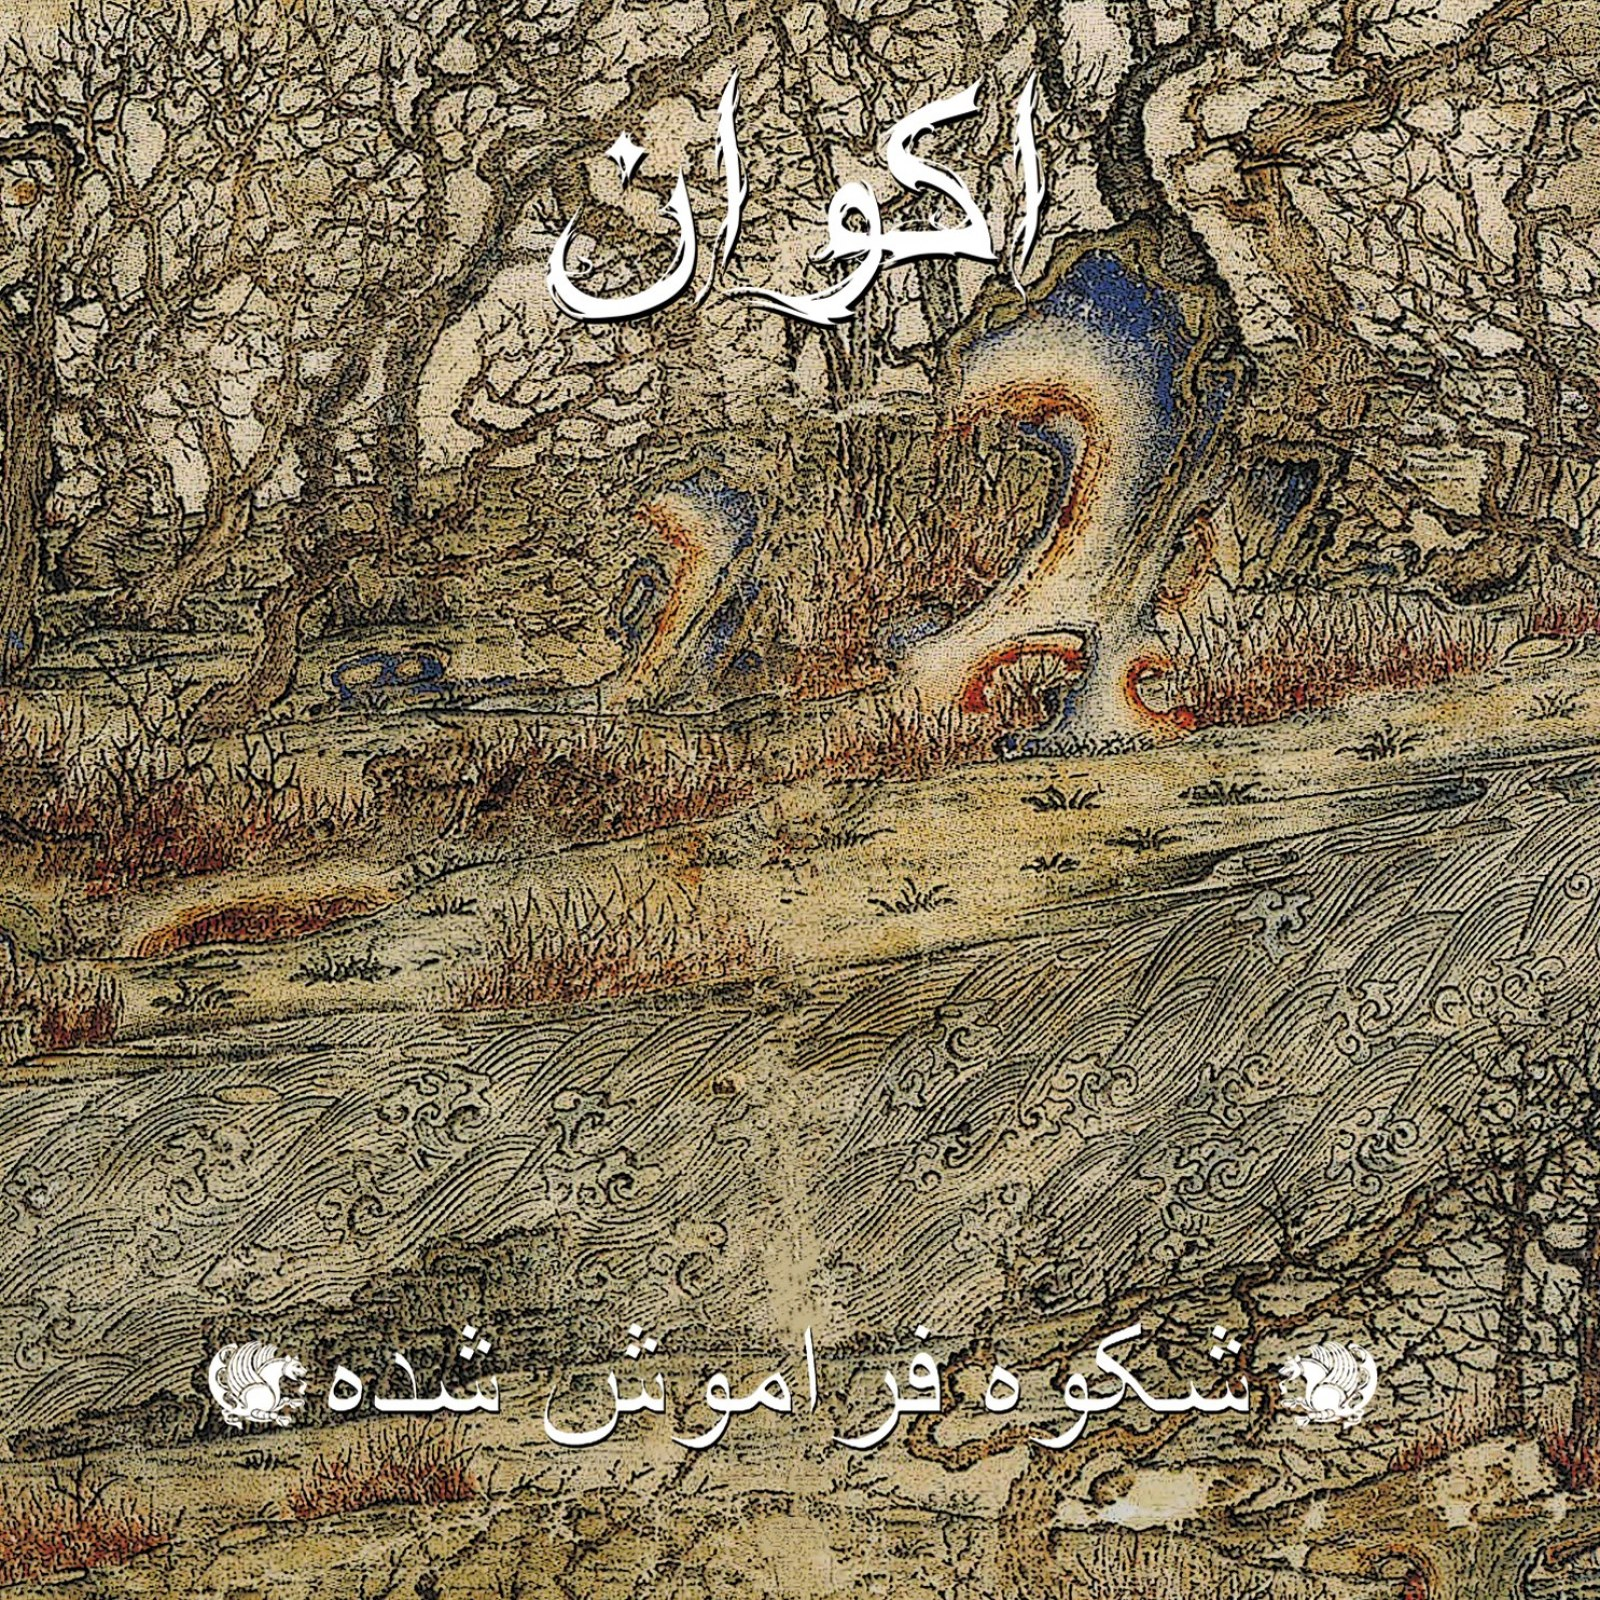 Review for Akvan / اكوان - شکوه فراموش شده (Forgotten Glory)